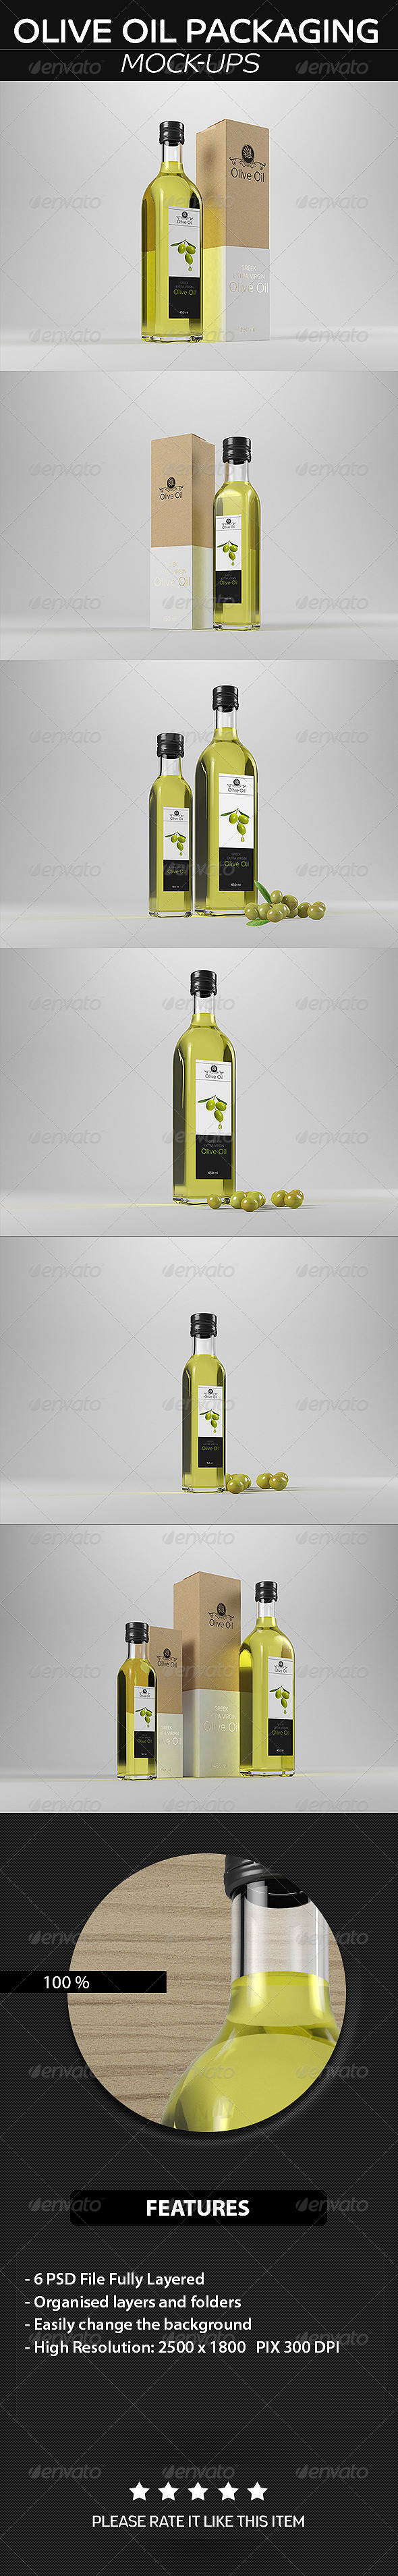 GraphicRiver Olive Oil Packaging Mockup 8739289